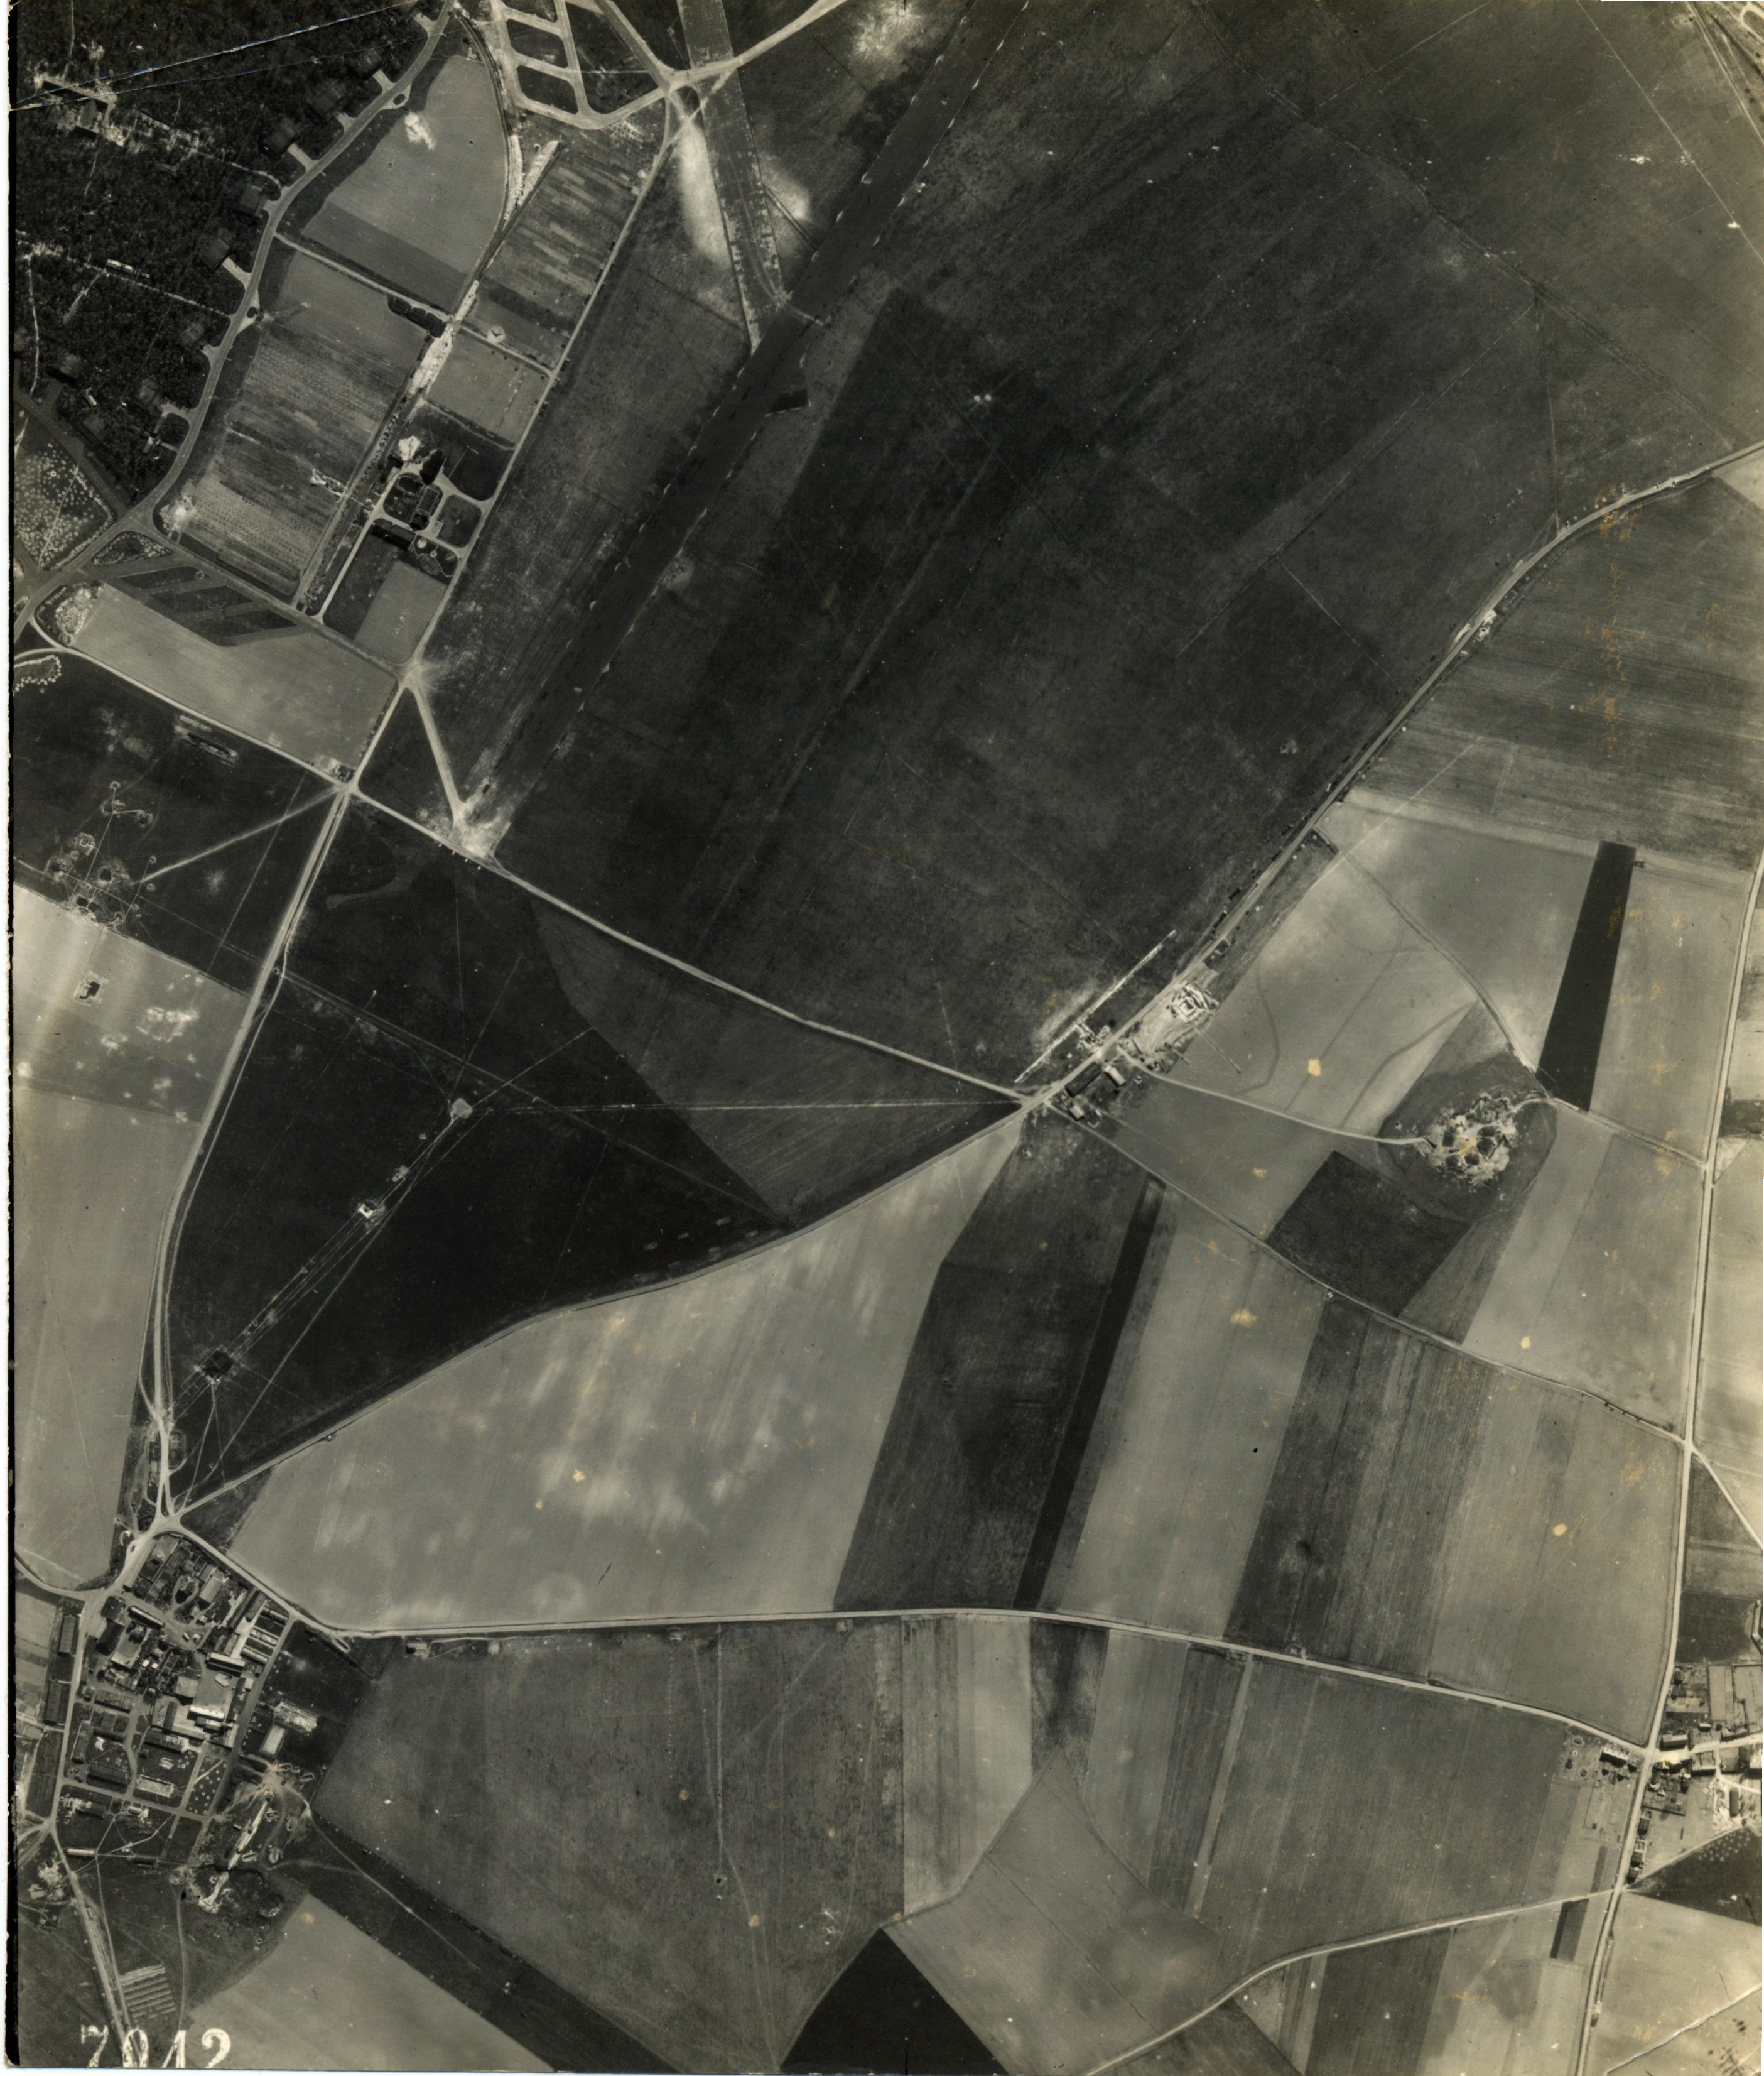 USAAAF 7PG22FS aerial recon photo to Luftwaffe Airfield Laon Athies April 23 1944 01